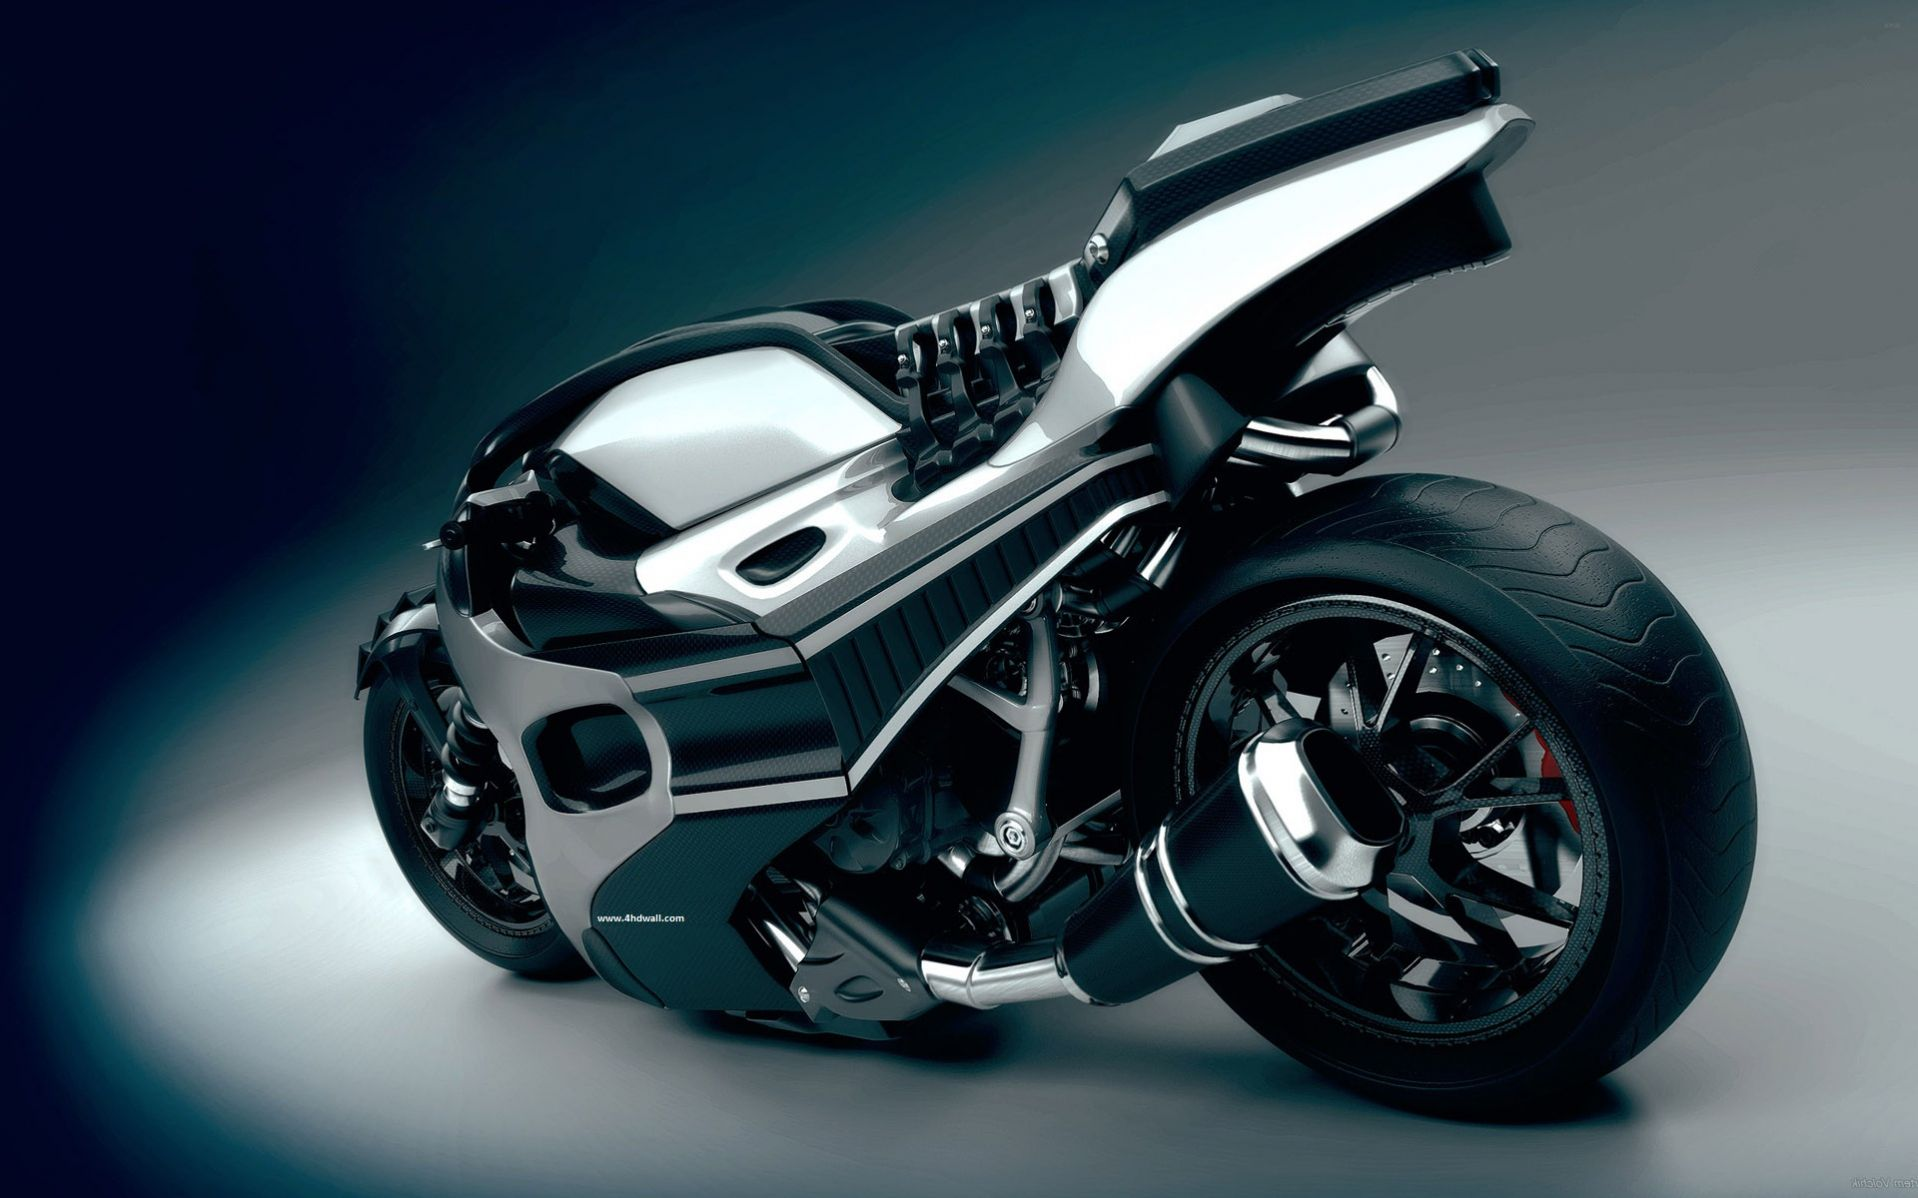 Check Out Motor Heavy Bikes Wallpapers In Hd We Add Quality